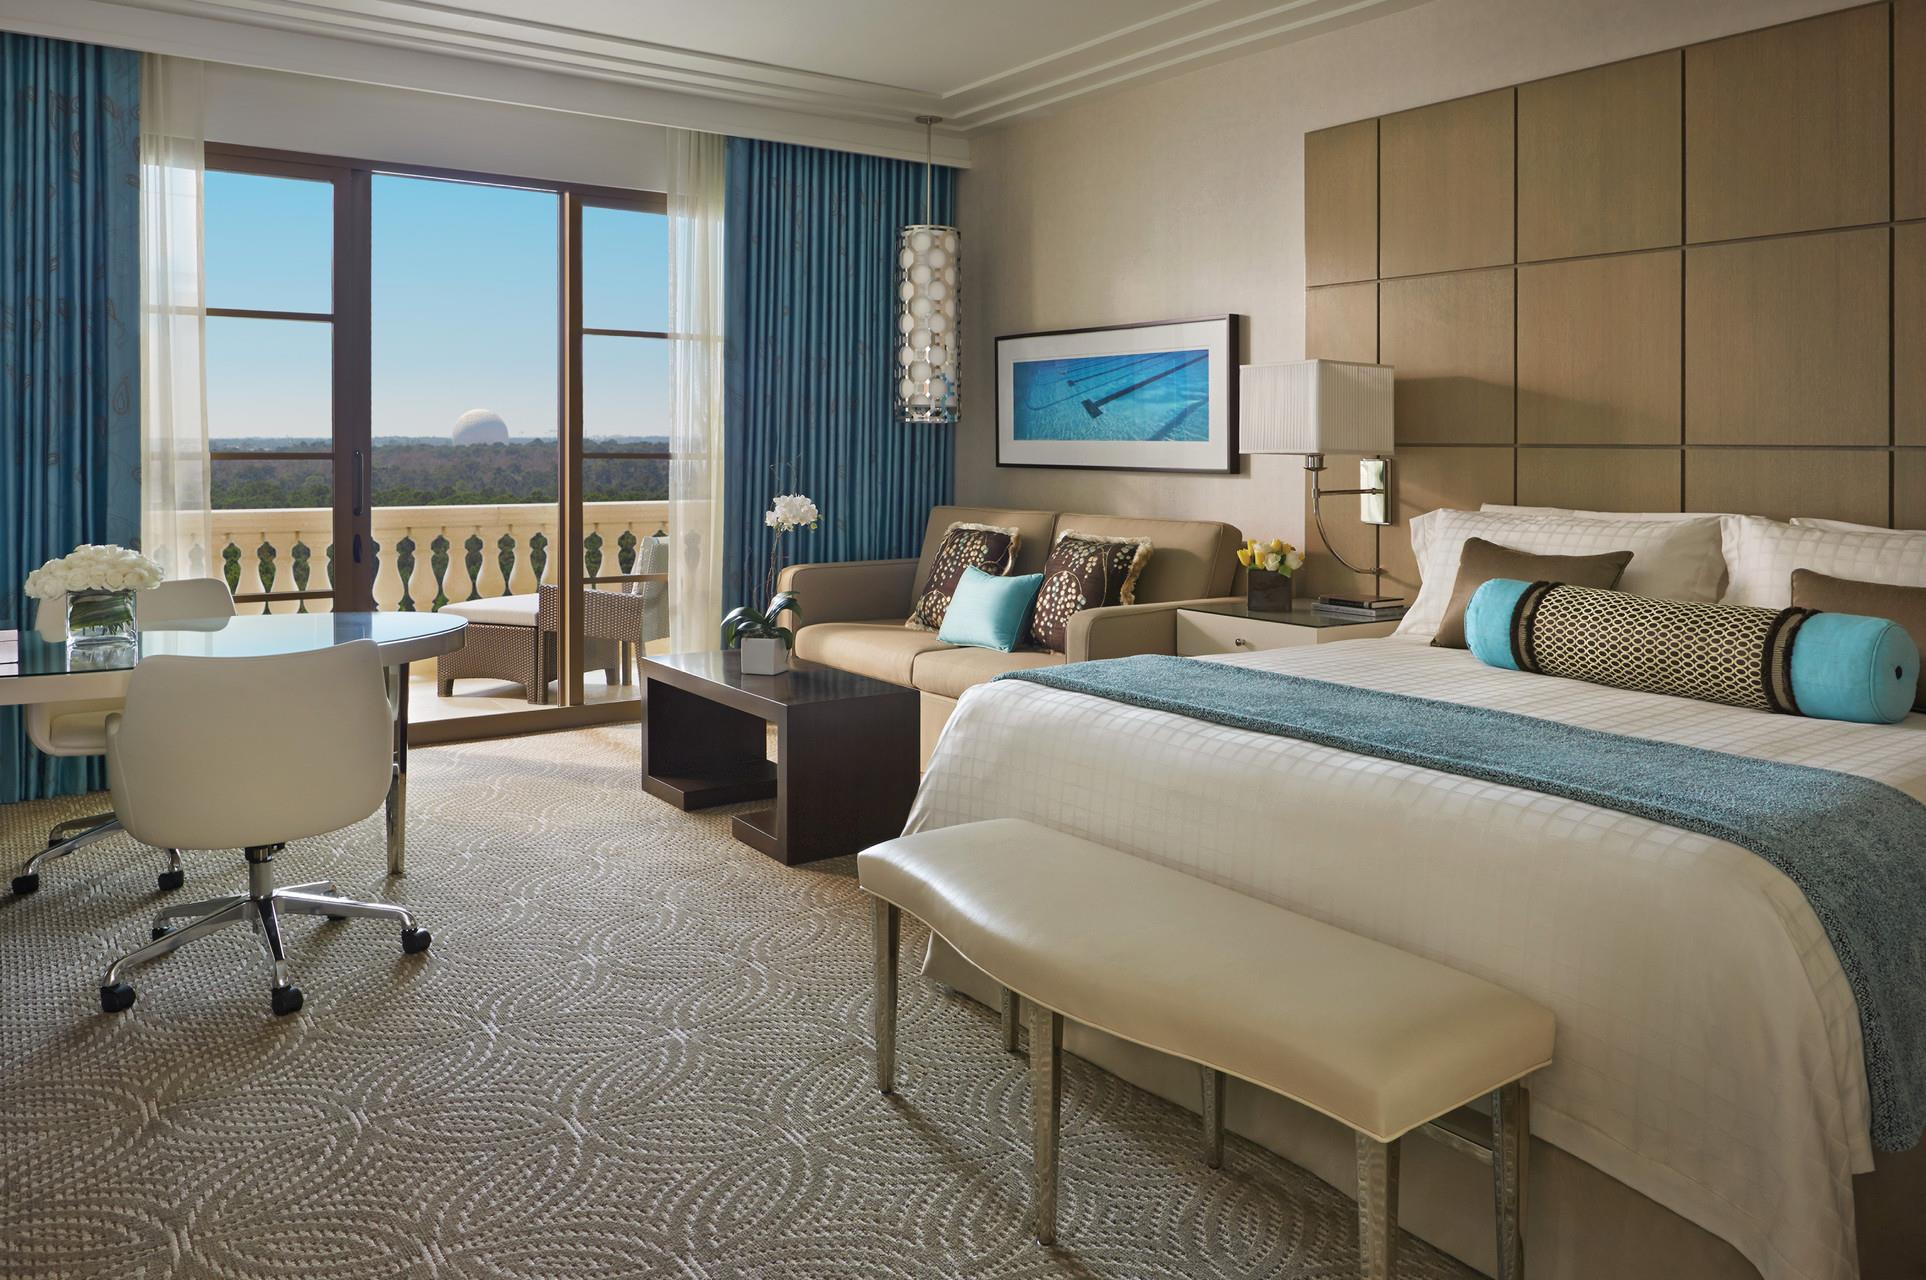 Four Seasons Orlando Room images